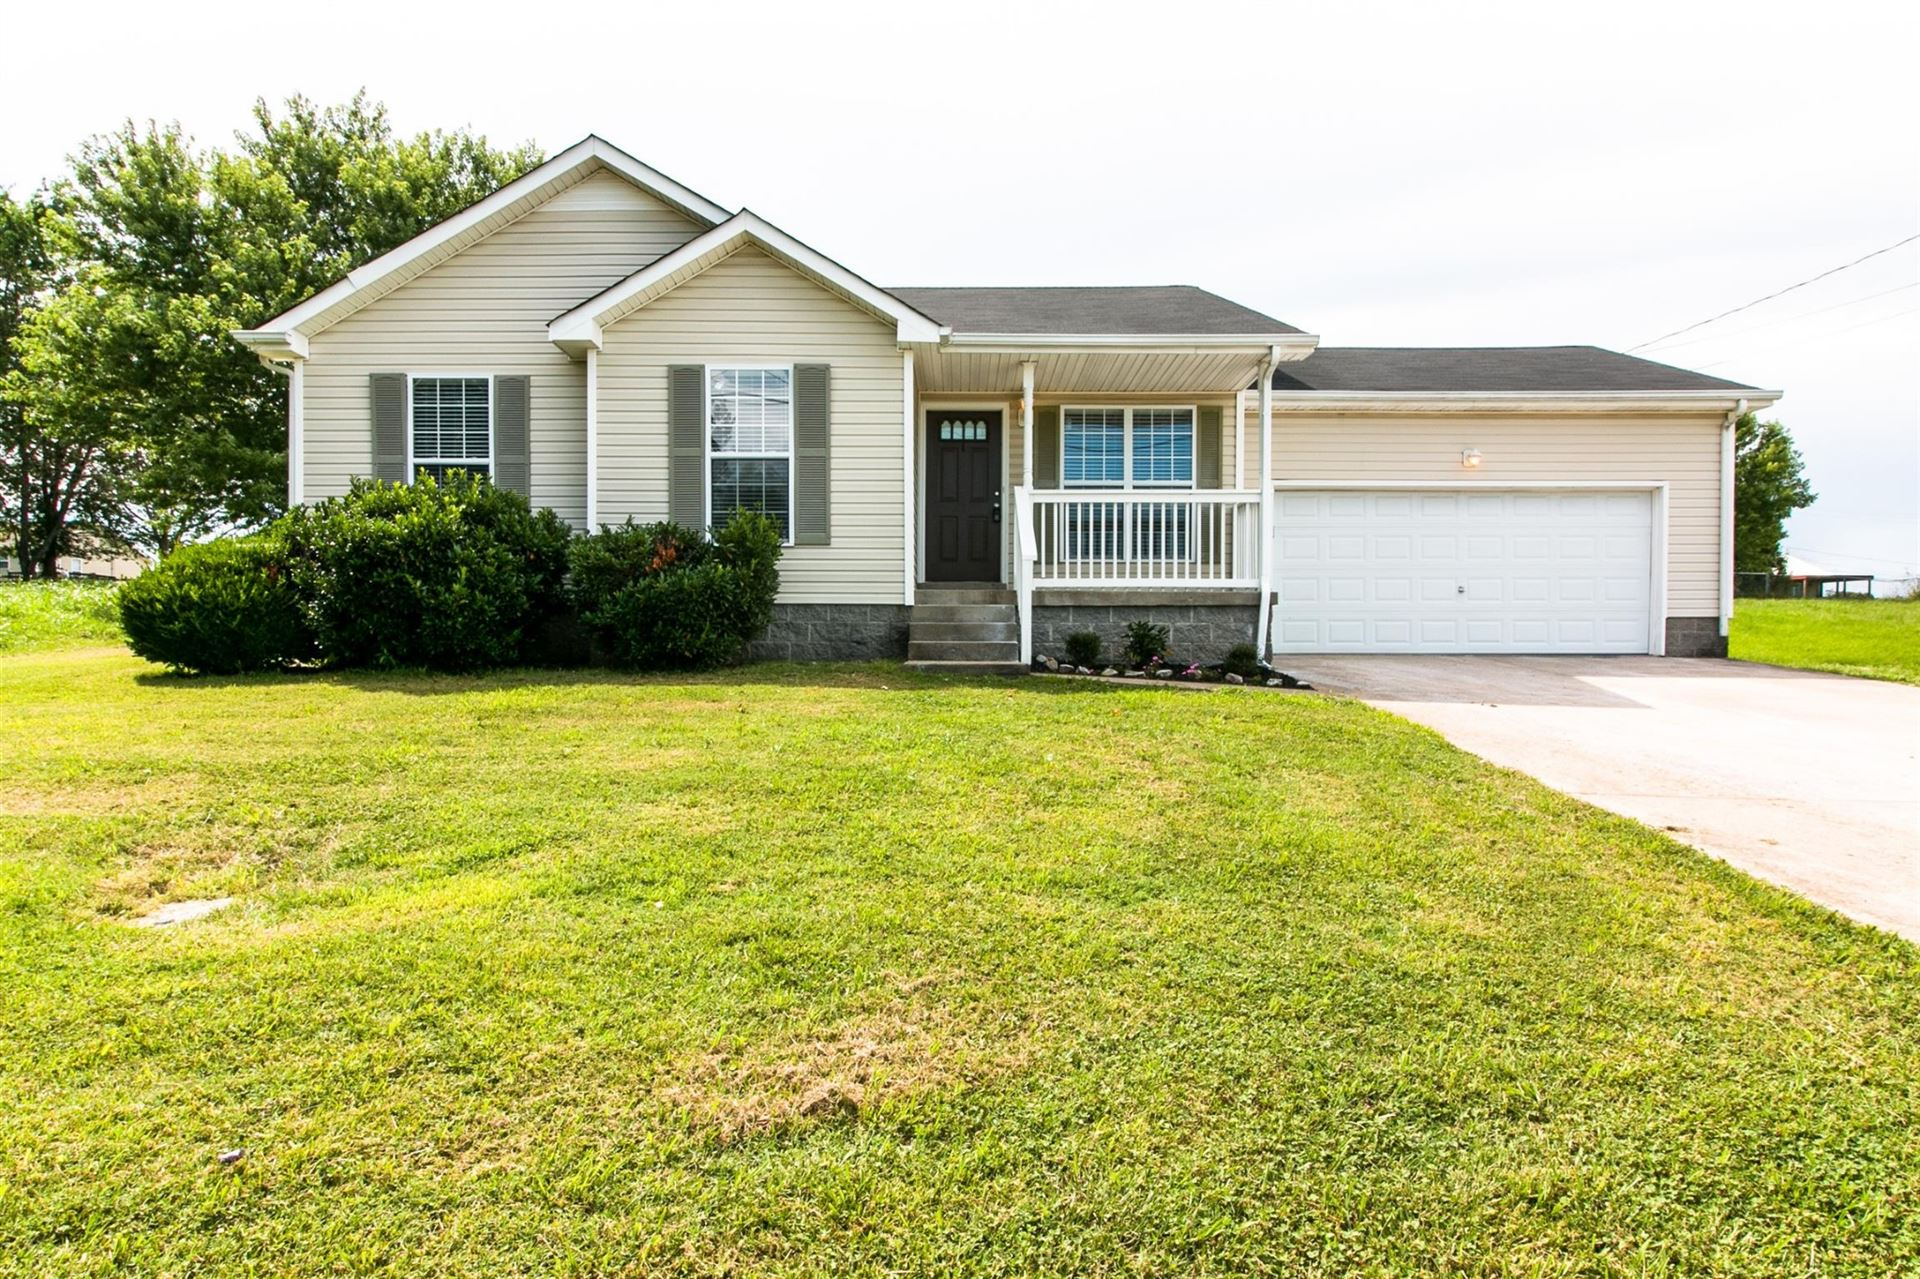 221 Golden Pond Ave, Oak Grove, KY 42262 - MLS#: 2211142